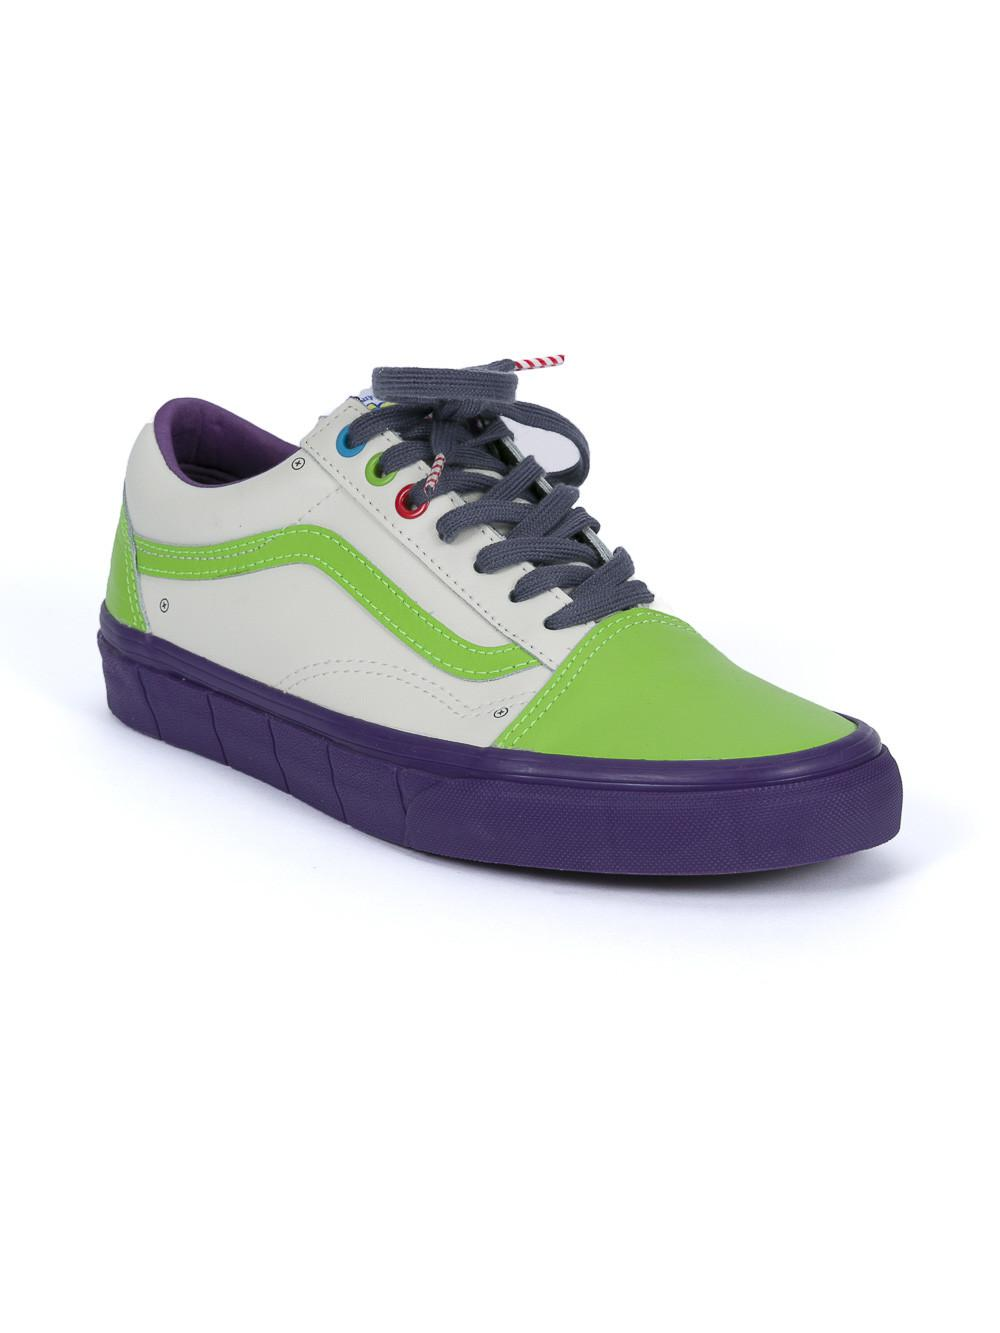 ebe2afc30512 Vans X Toy Story  buzz Lightyear  Old Skool Sneakers for Men - Lyst